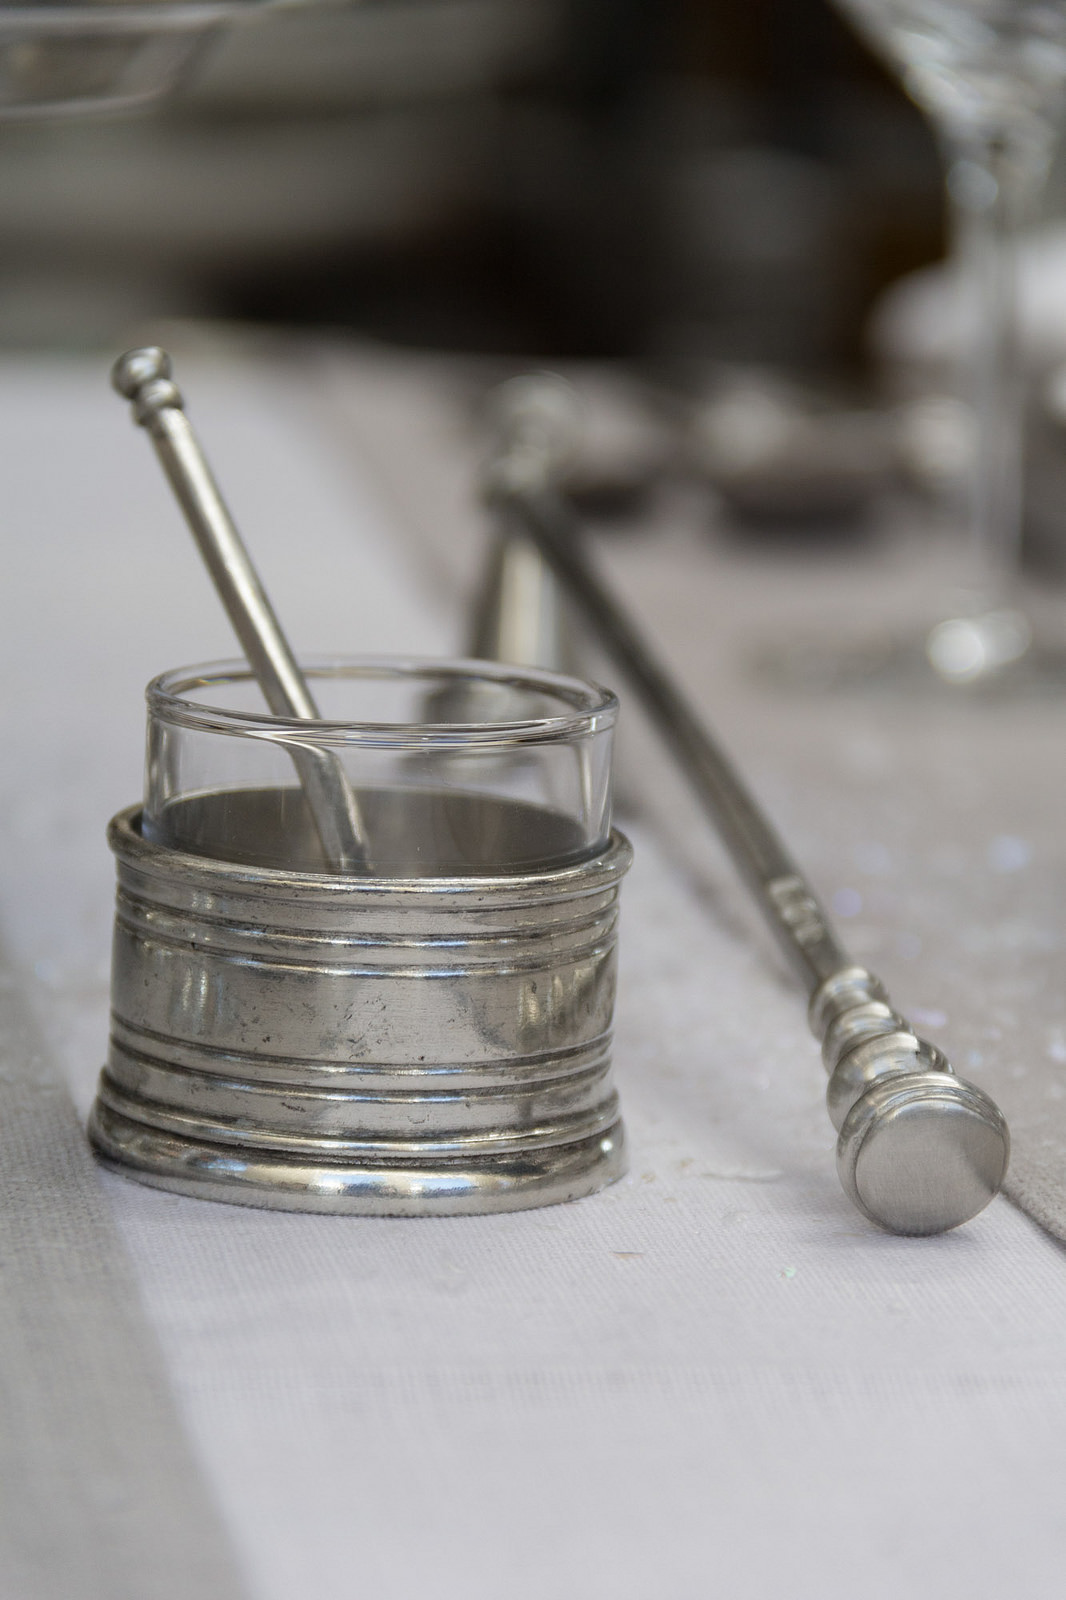 Match Pewter condiment holder, candle snuffer